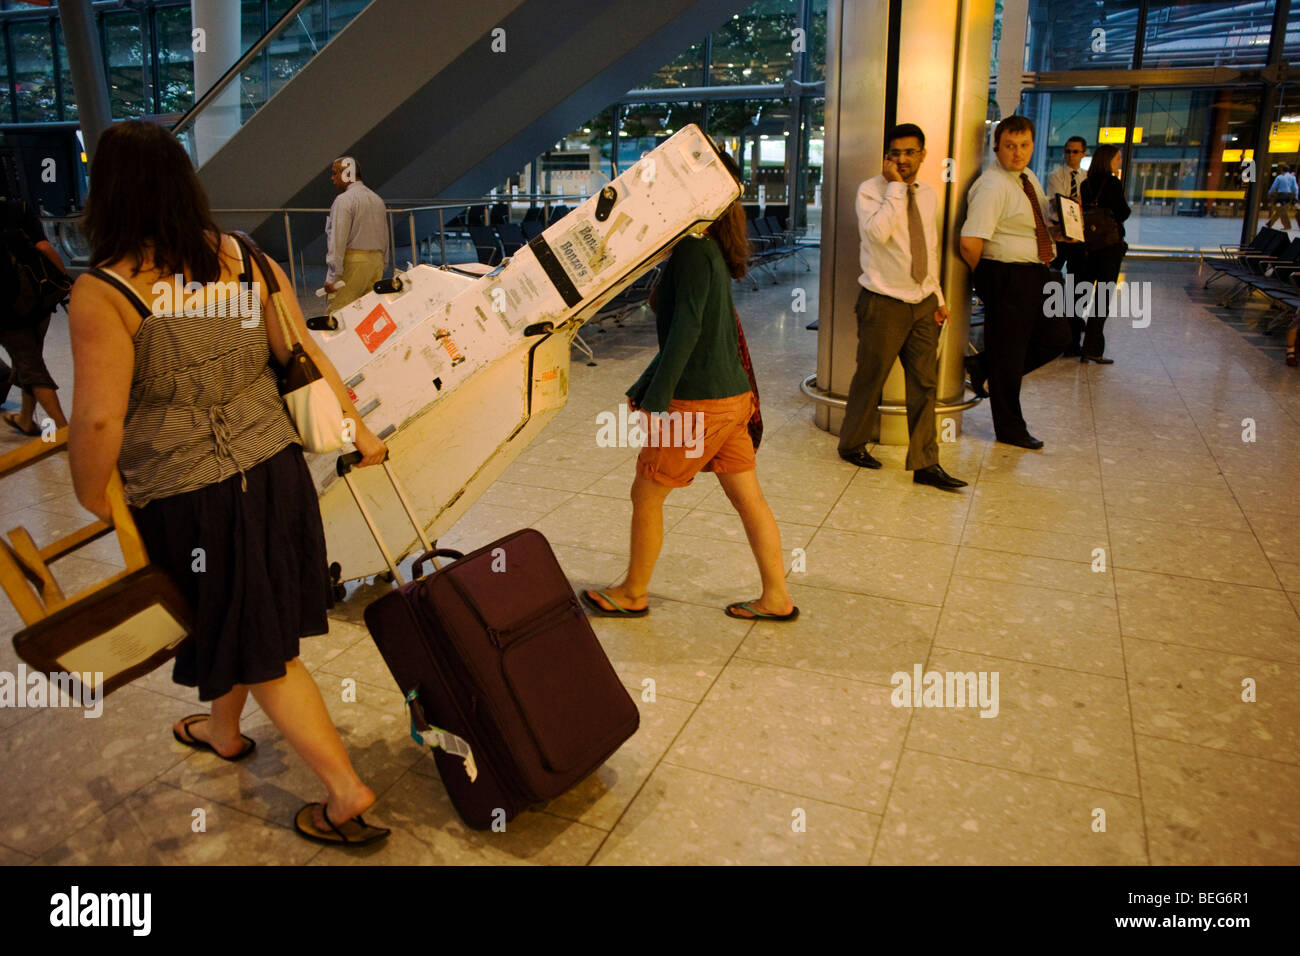 School musicians head for waiting coaches, one with a double-bass in Arrivals at Heathrow's terminal 5. - Stock Image